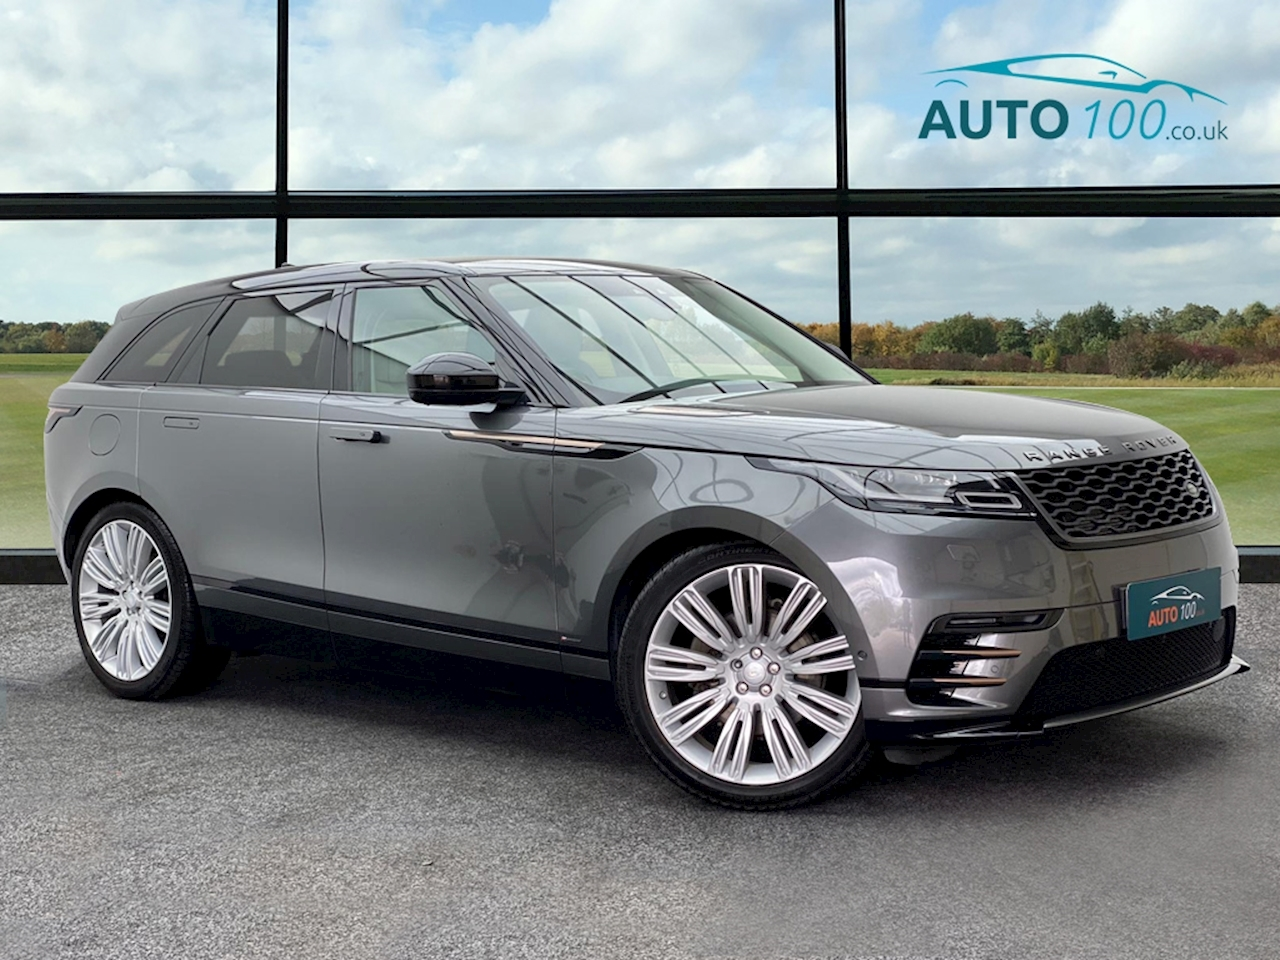 Land Rover Range Rover Velar R-Dynamic Hse Estate 3.0 Automatic Diesel